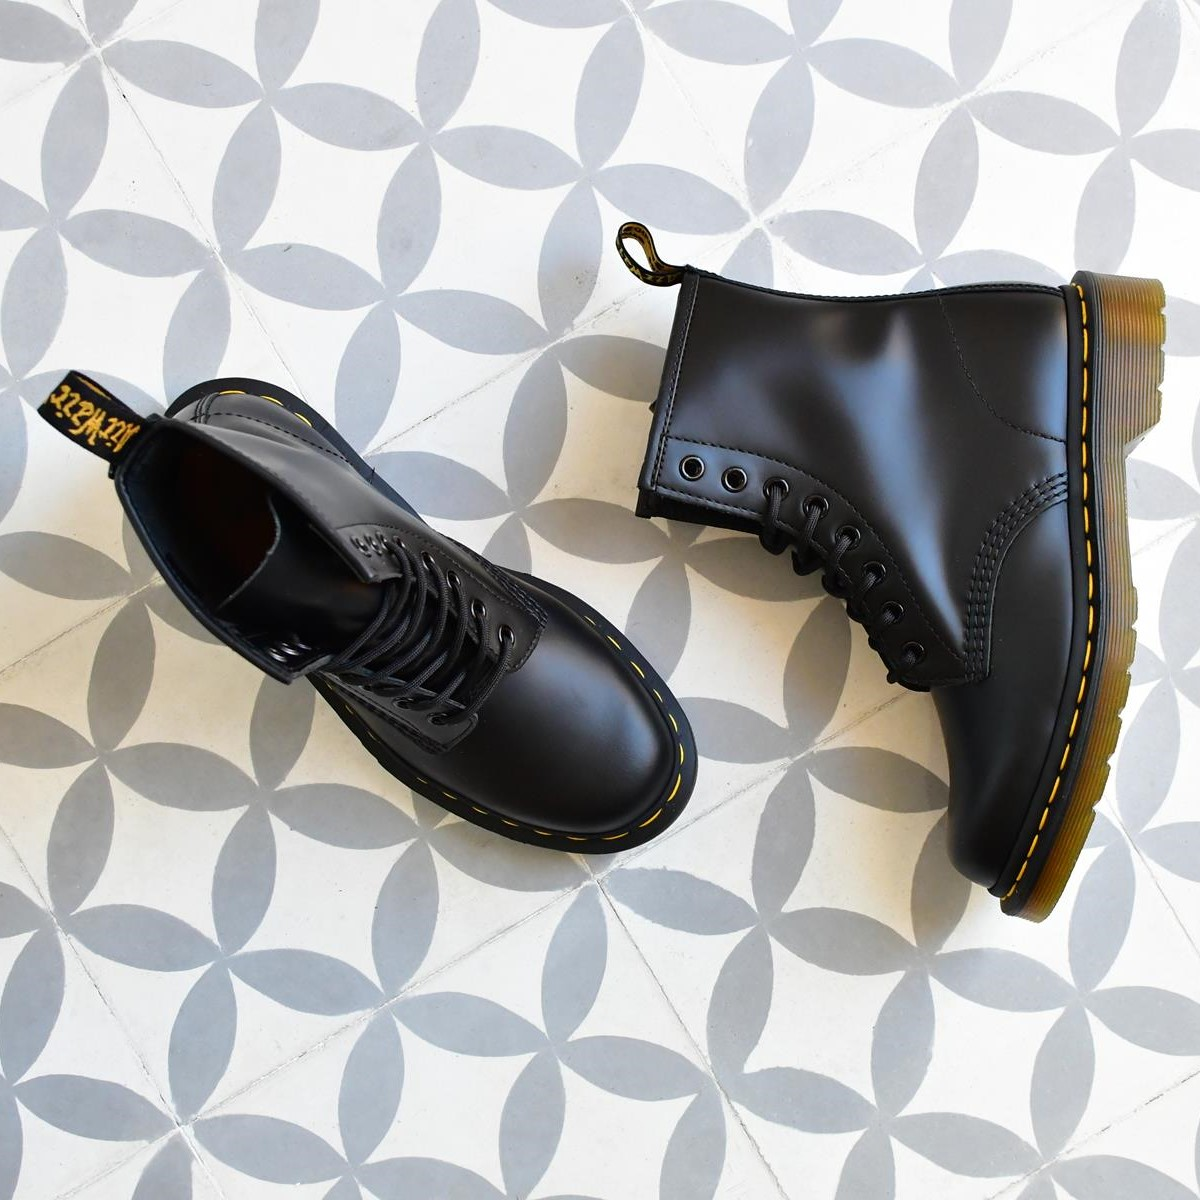 1460Smooth_AmorShoes-Dr.Martens-Eye-Boot-10072004-black-smooth-boots-botas-10072004-negro-negra-1460Smooth